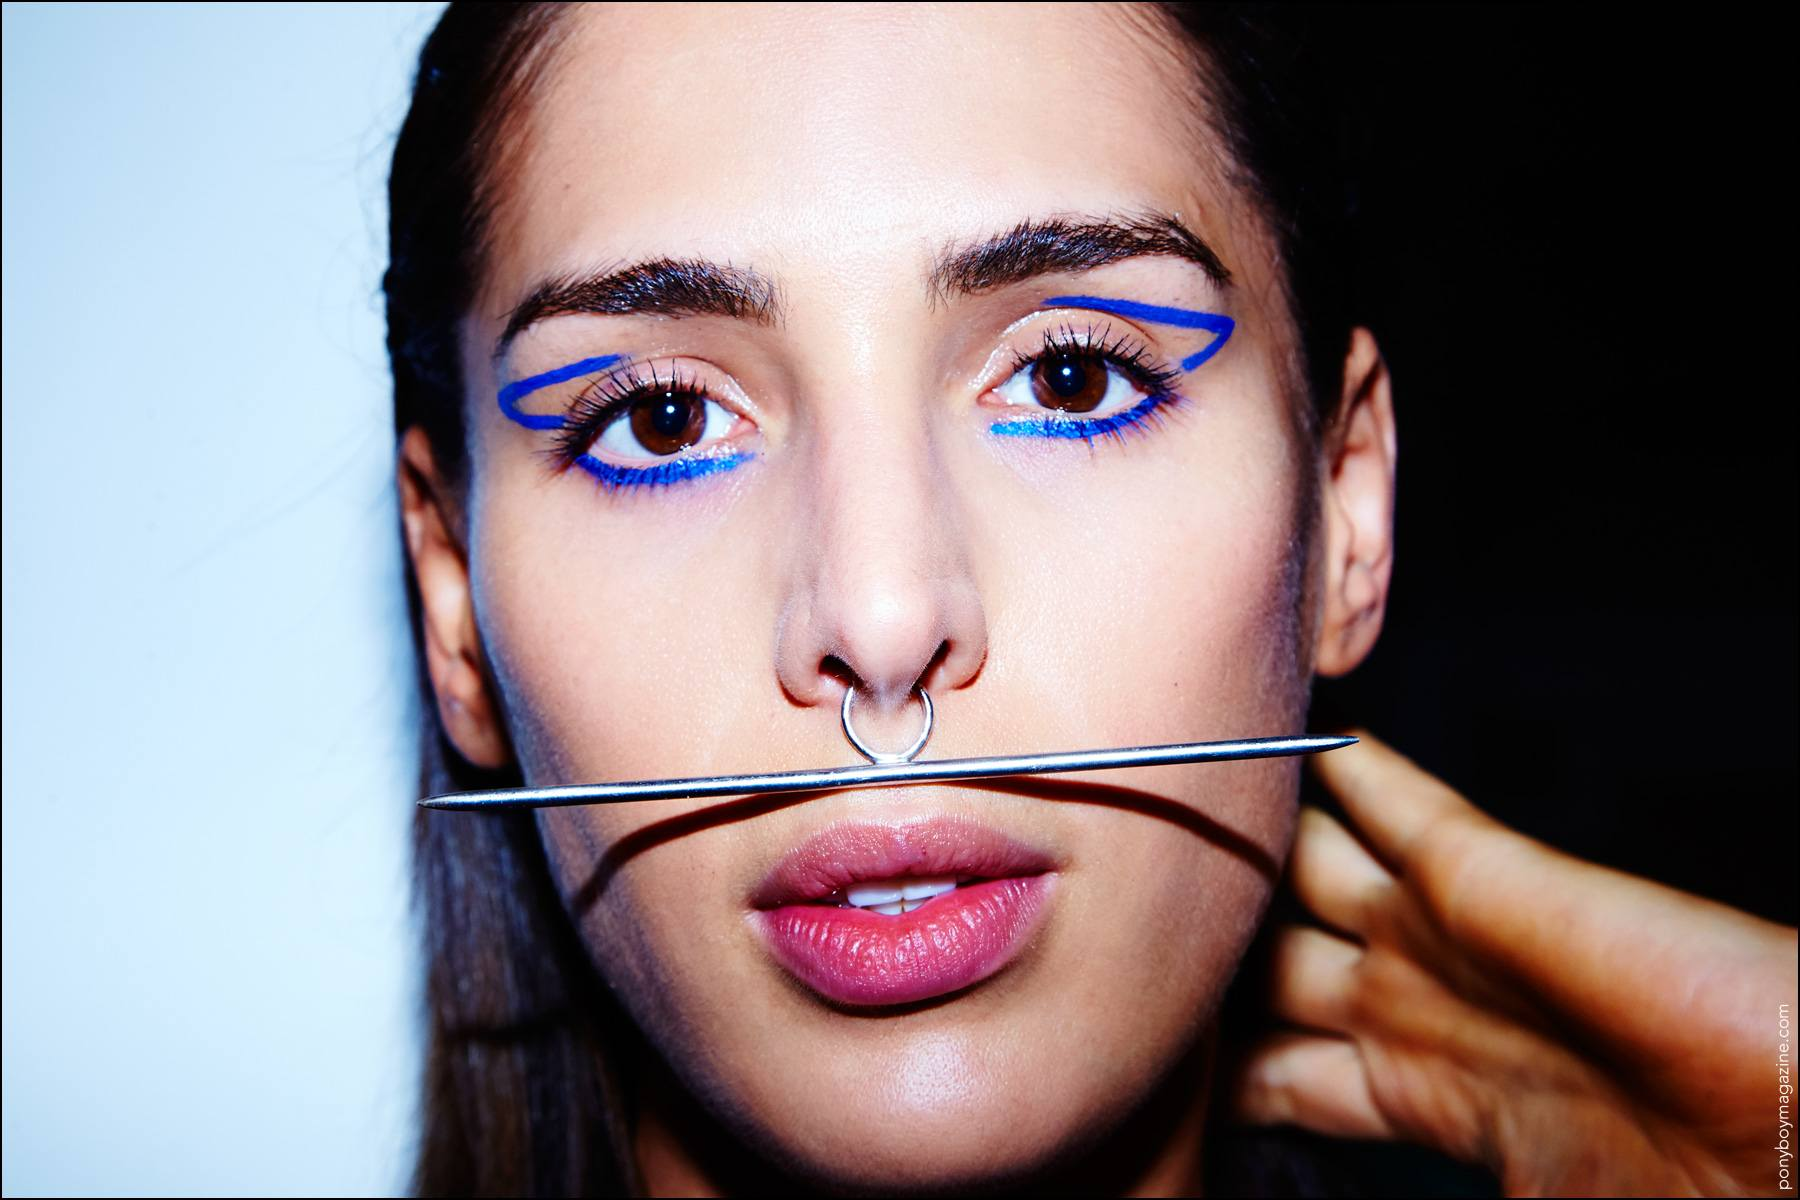 Model Carmen Carrera snapped backstage at the Chromat Spring/Summer 2017 womenswear show. Photography by Alexander Thompson for Ponyboy magazine NY.